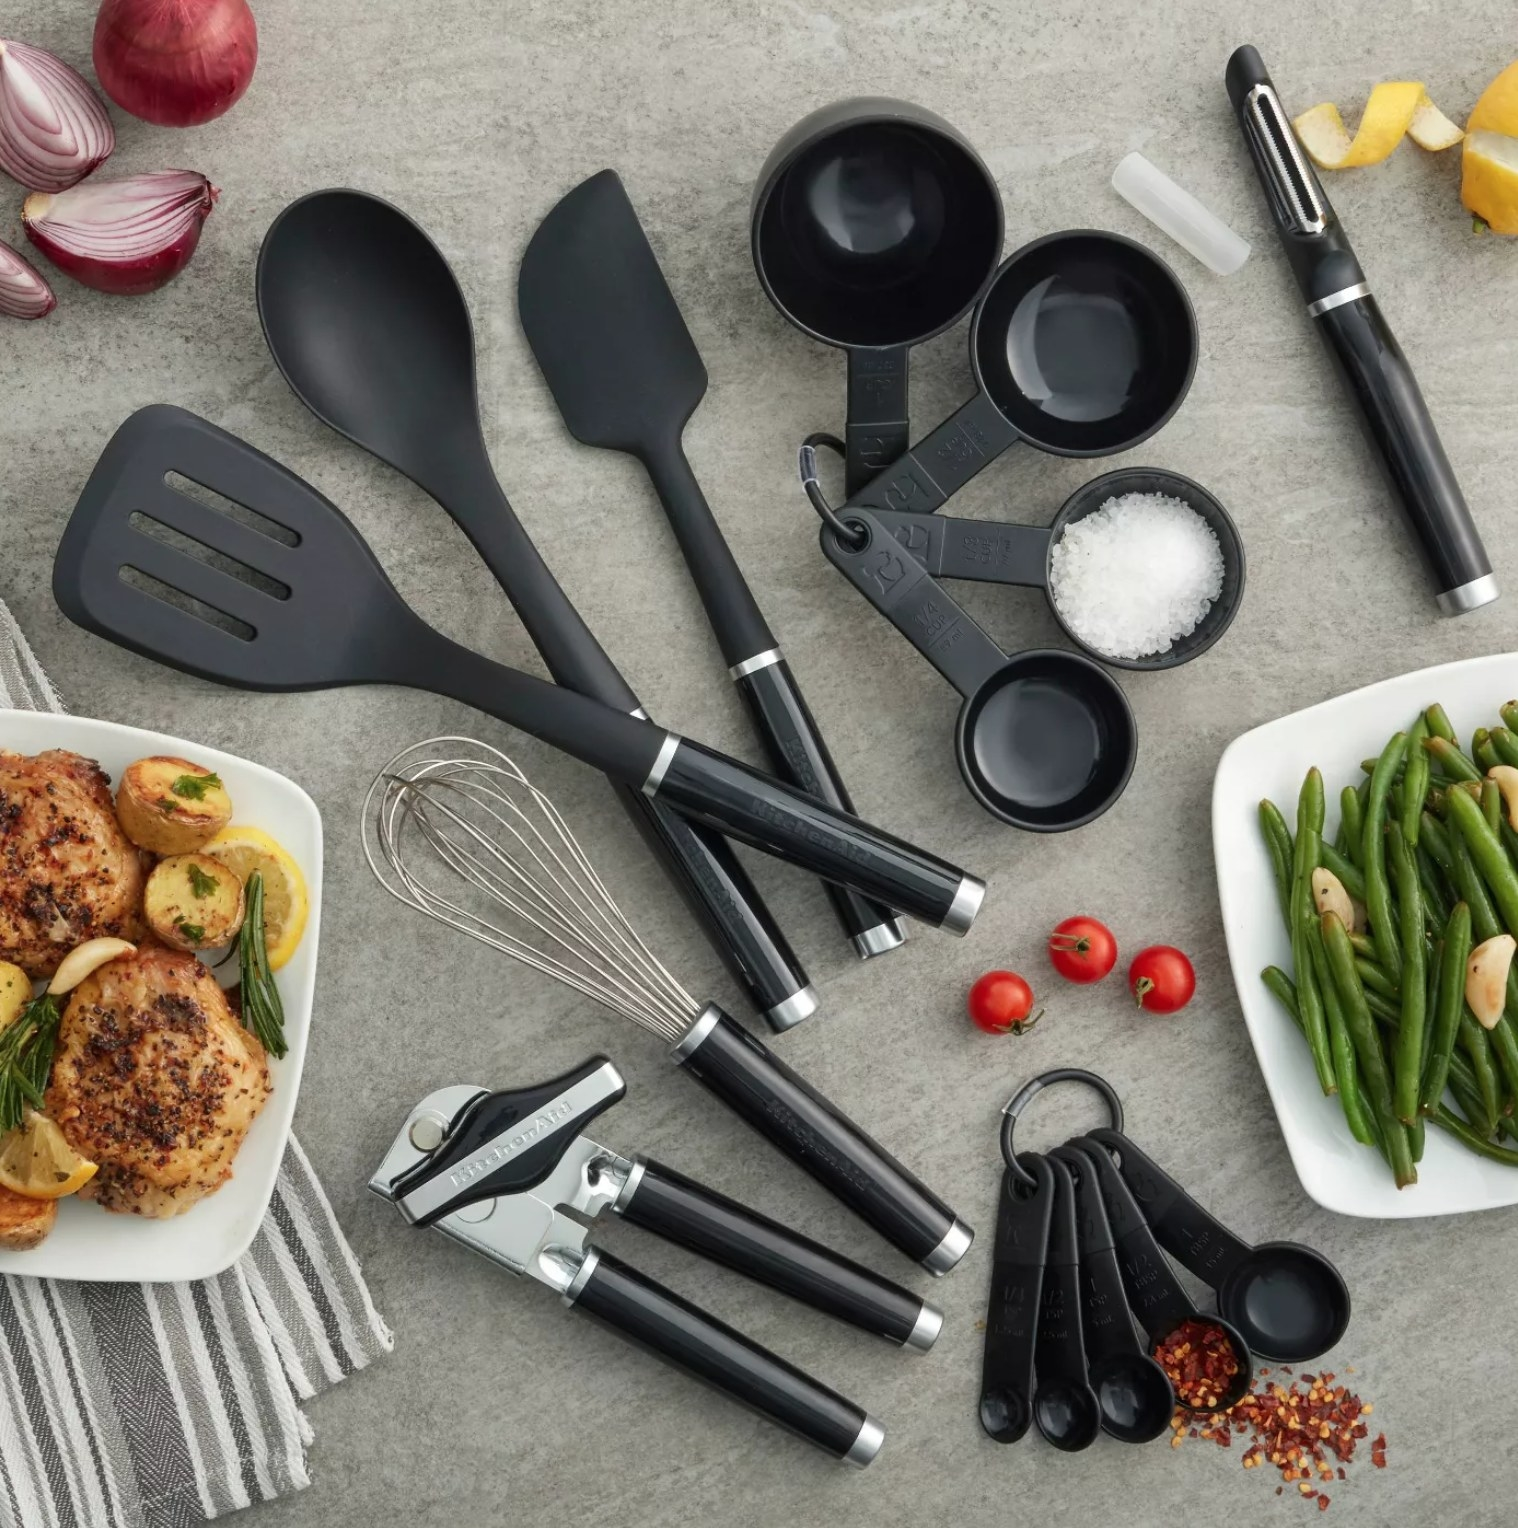 the utensil set on a gray counter with various plates of food and spices surrounding it.